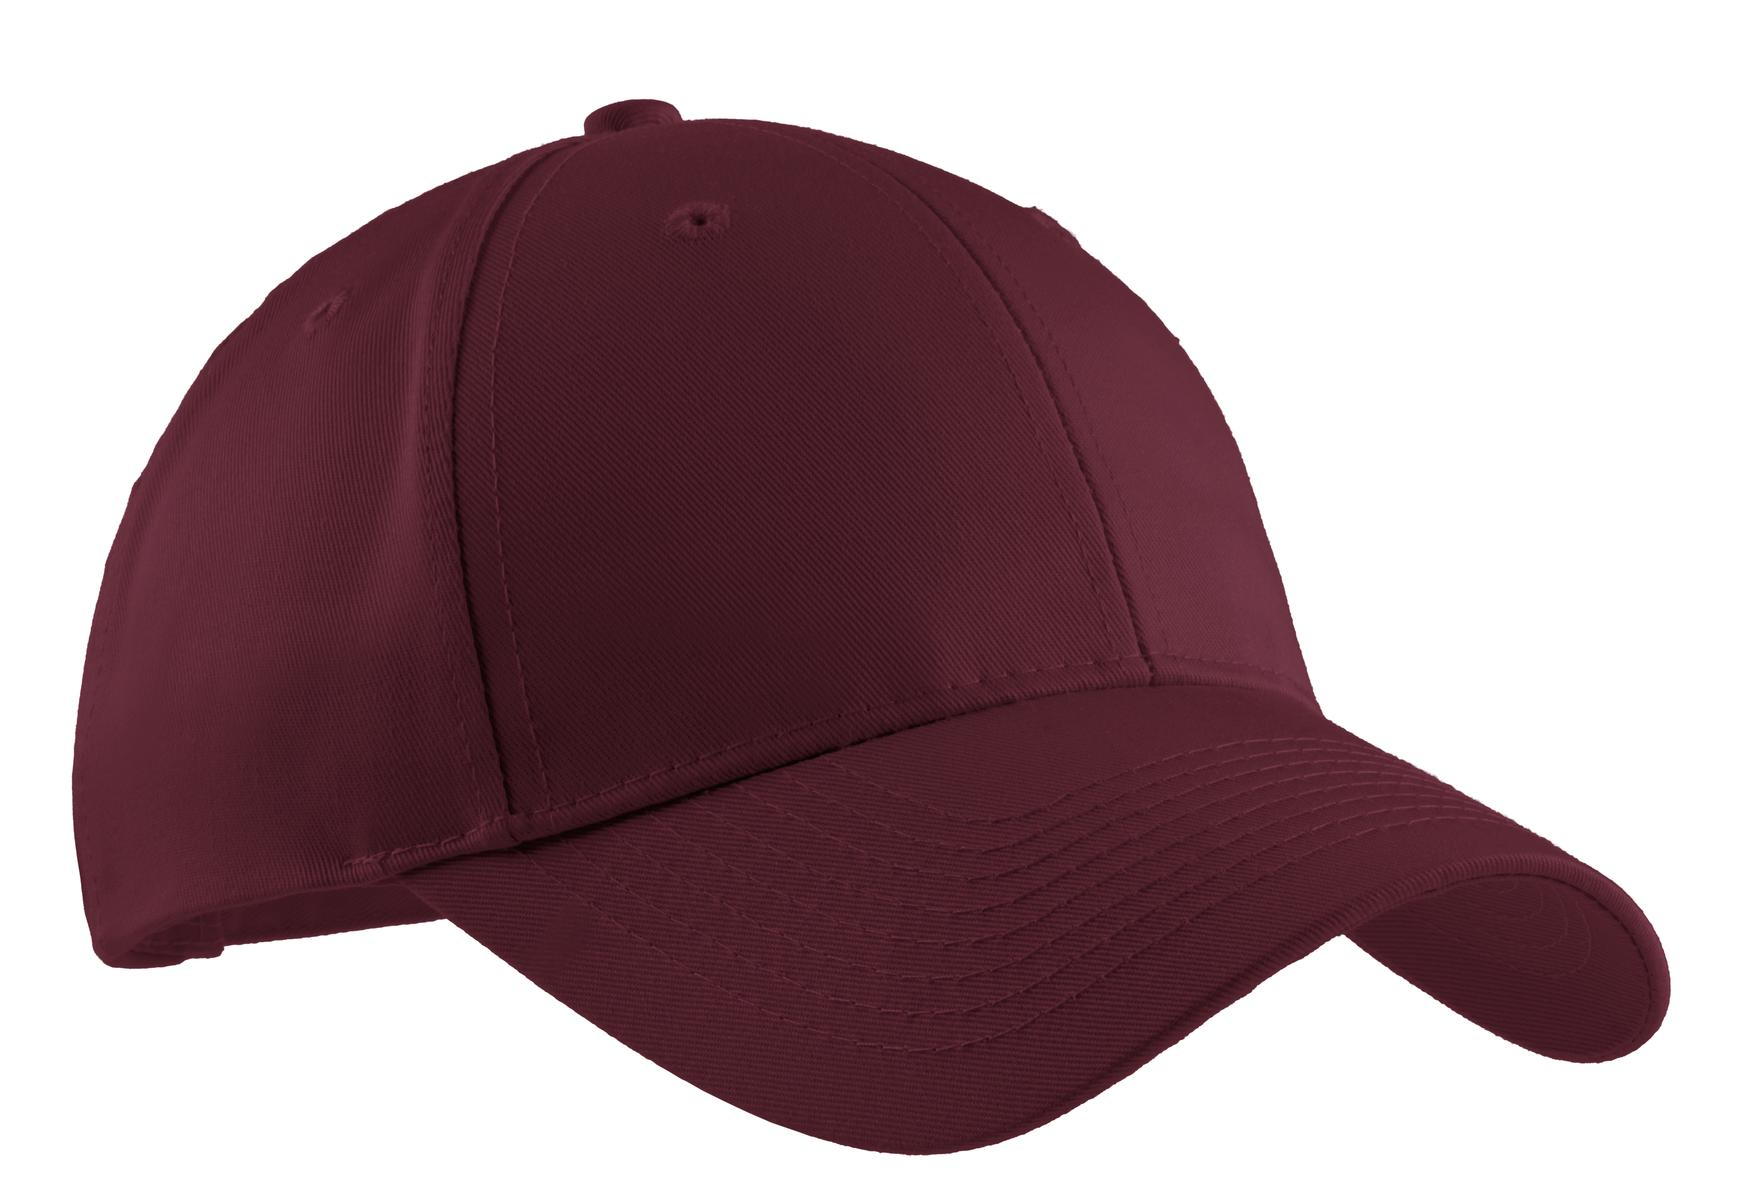 Port Authority ®  Easy Care Cap. C608 - Burgundy